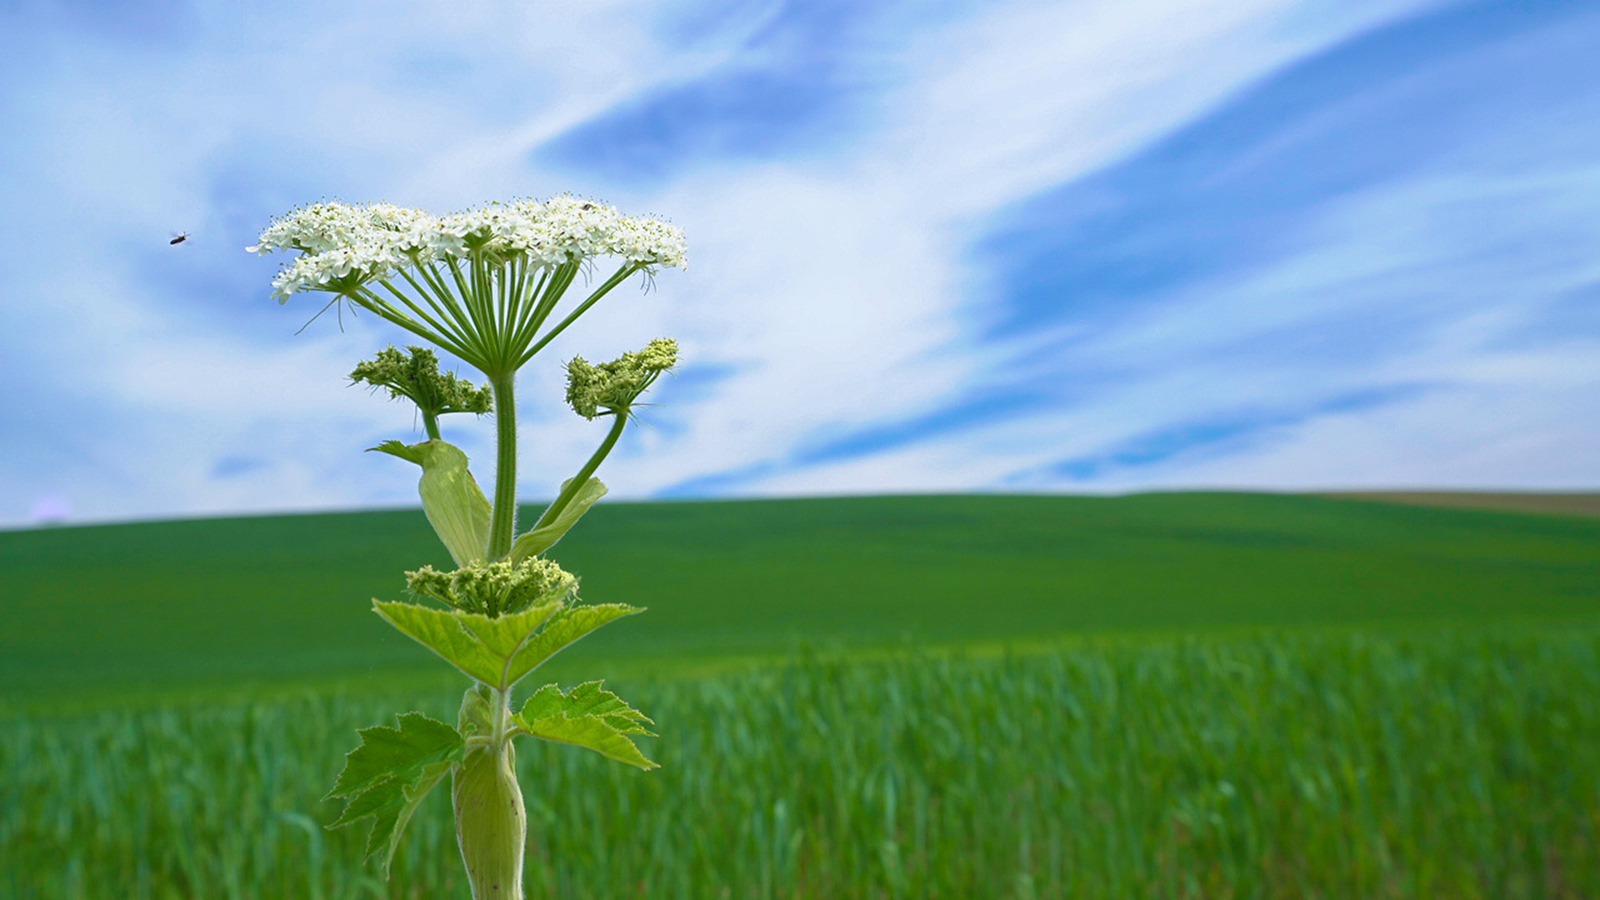 Cow's Parsnip and Wheat Field